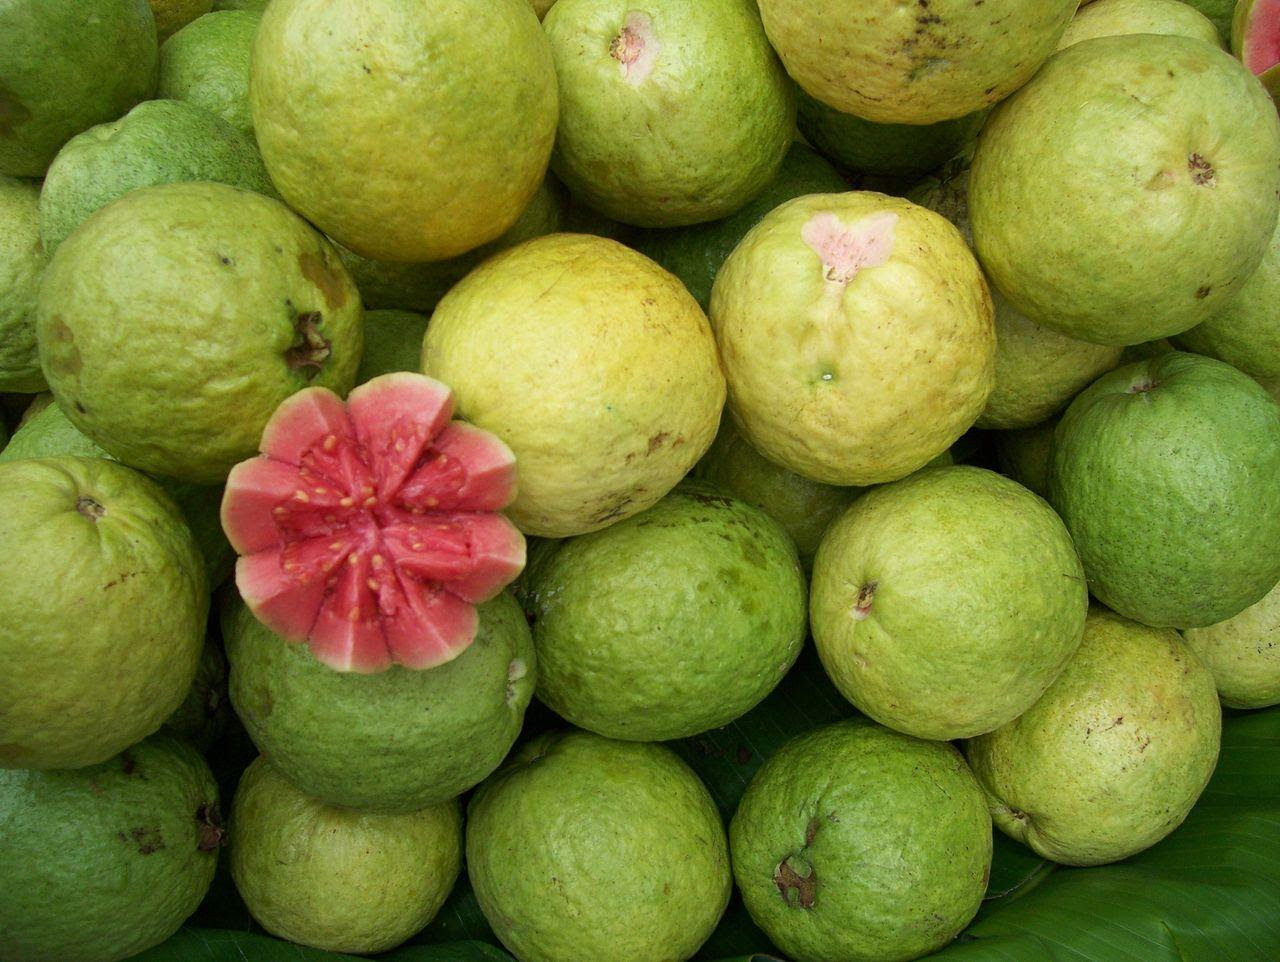 Their Majesties Guava and Guava Leaves and Their Medicinal Benefits